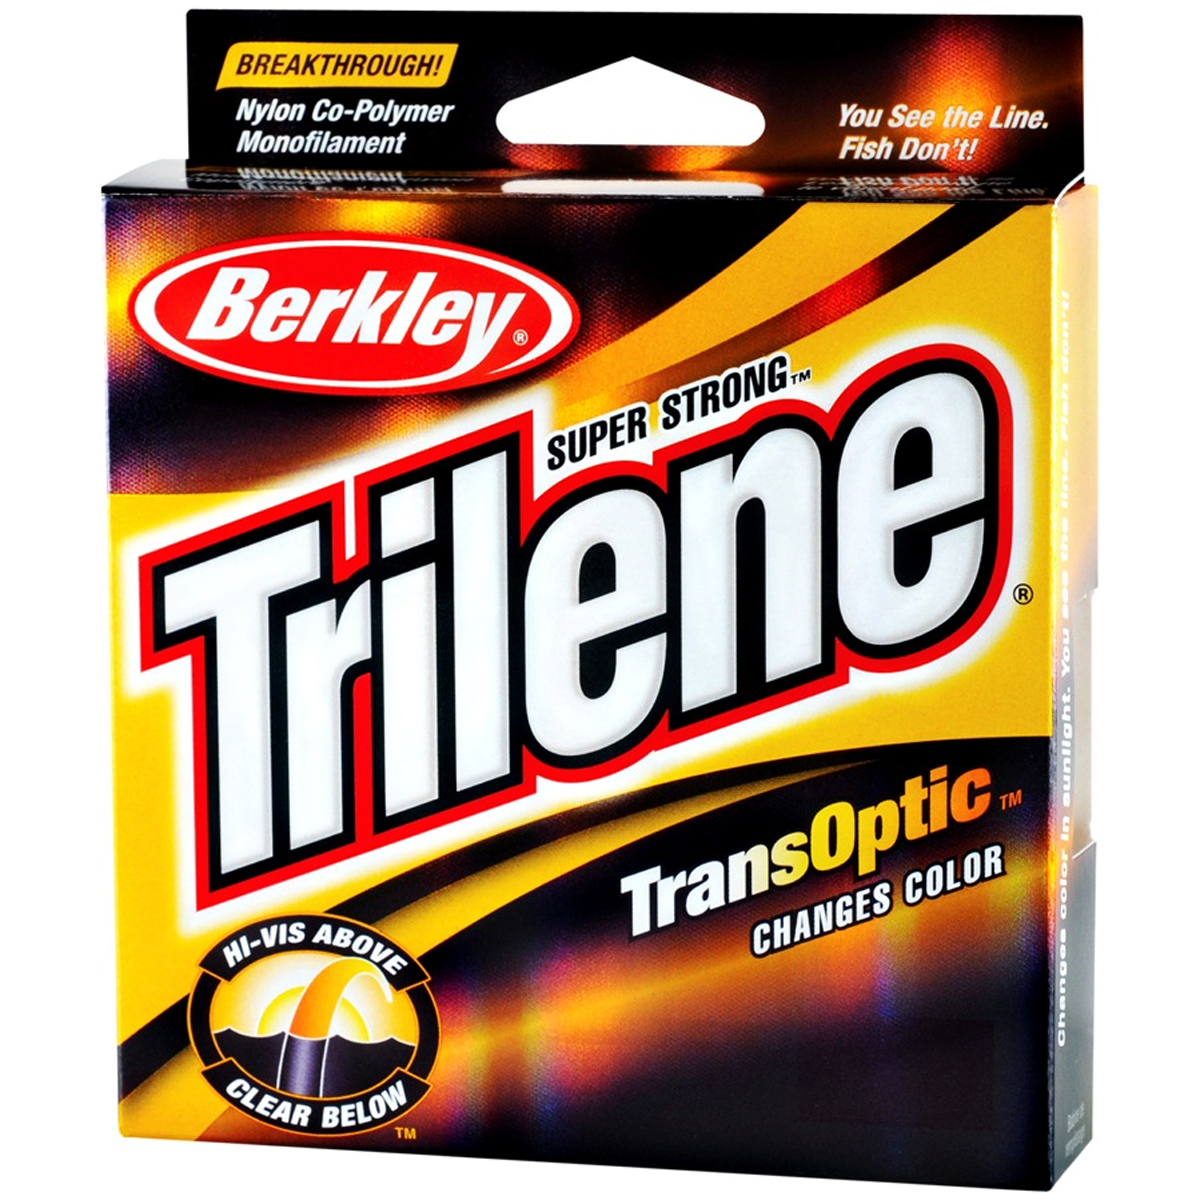 Berkley Trilene TransOptic Fishing Line (220 yds) - Clear/Gold | eBay